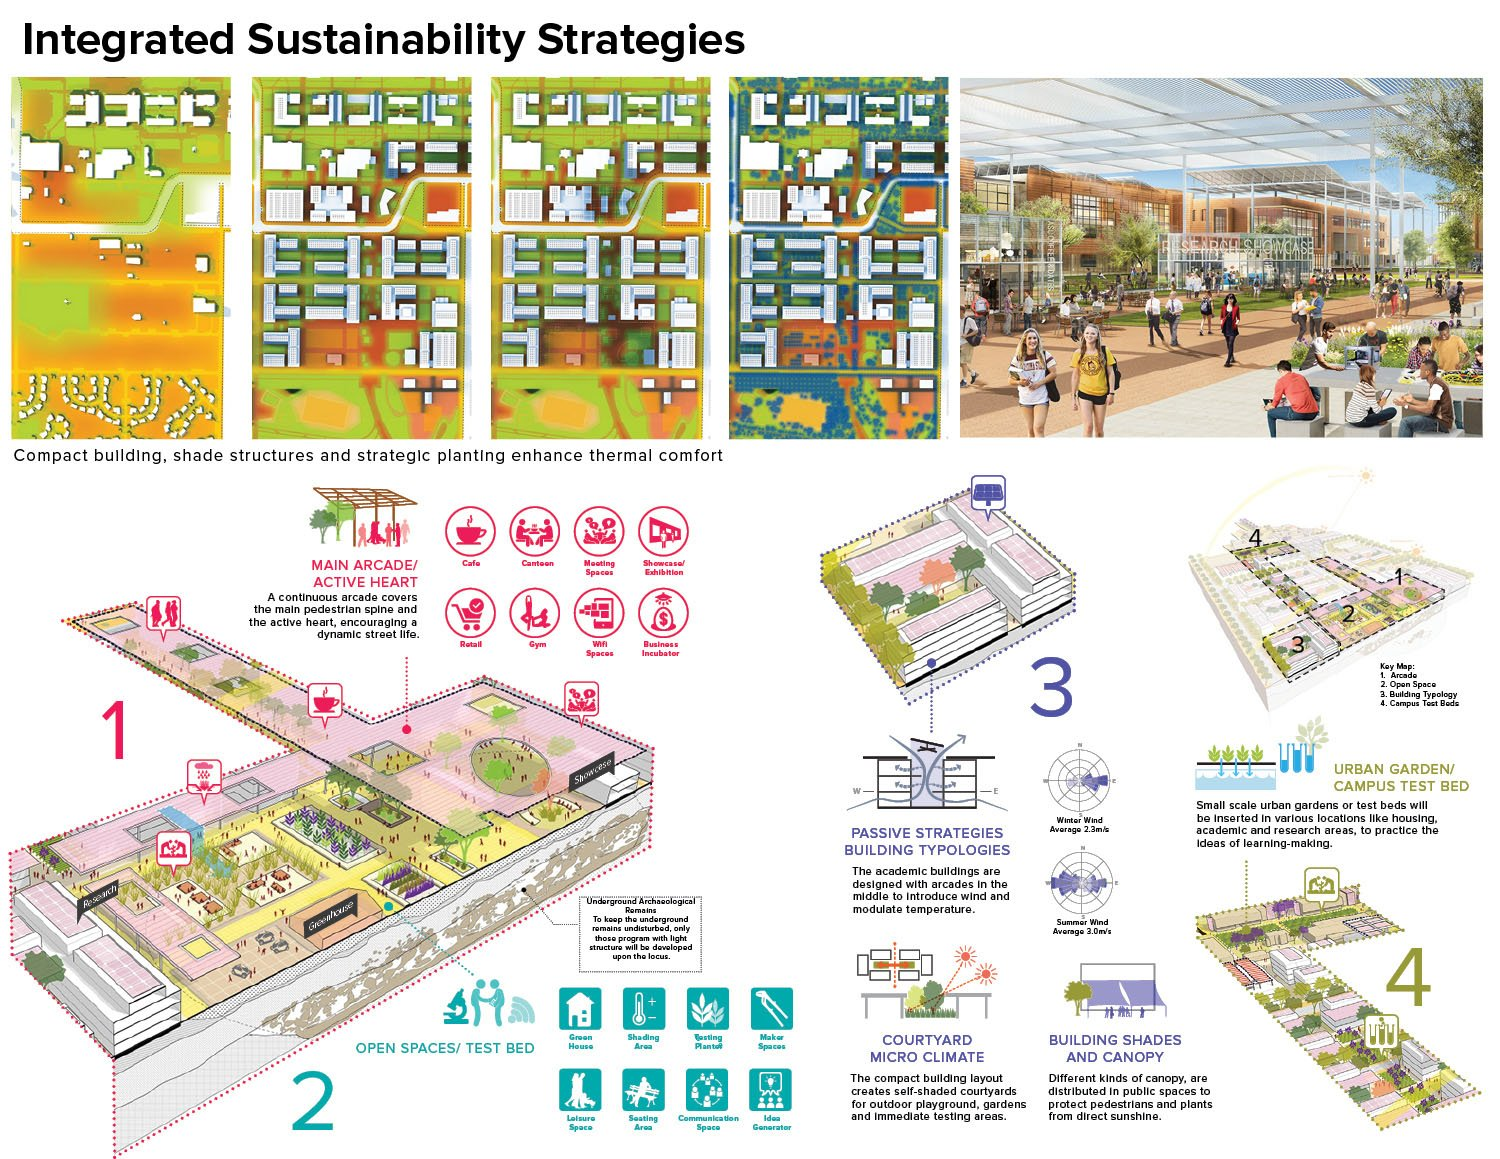 Integrated Sustainability Strategies - from Planning to Architecture to Landscape Sasaki